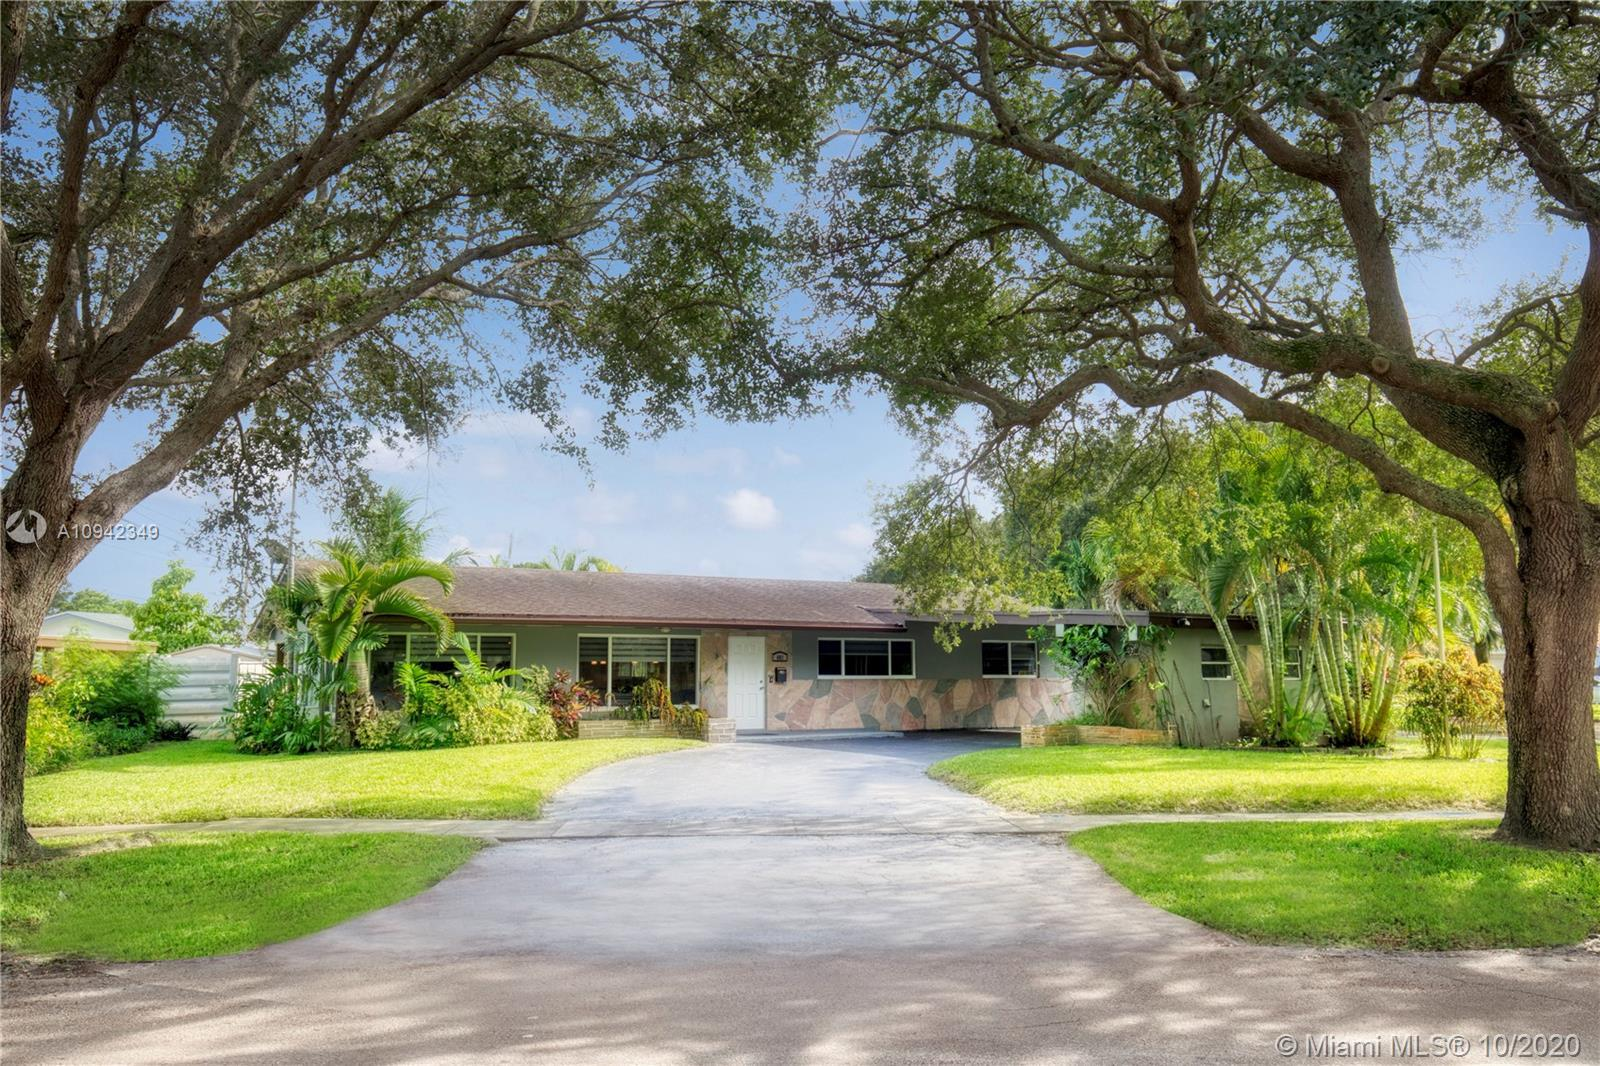 HIGHLY UPGRADED 3 BED/2BATH SMART HOME ON AN OVERSIZED CORNER LOT BOASTING A LARGE CIRCULAR DRIVEWAY